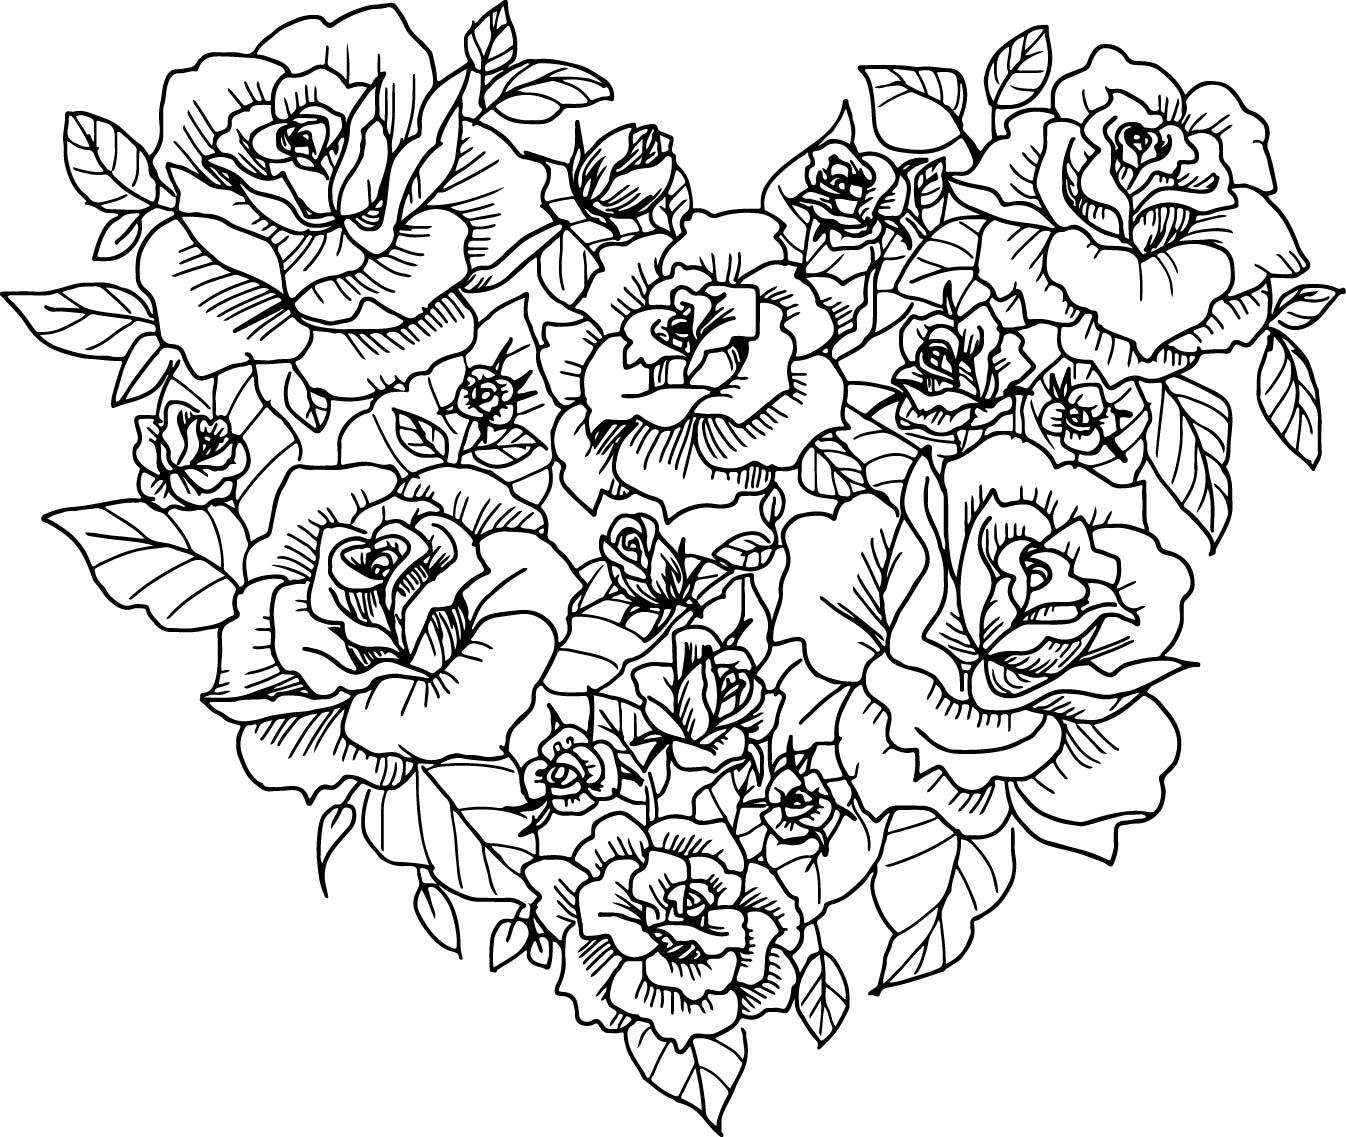 Heart Made of Roses to Color